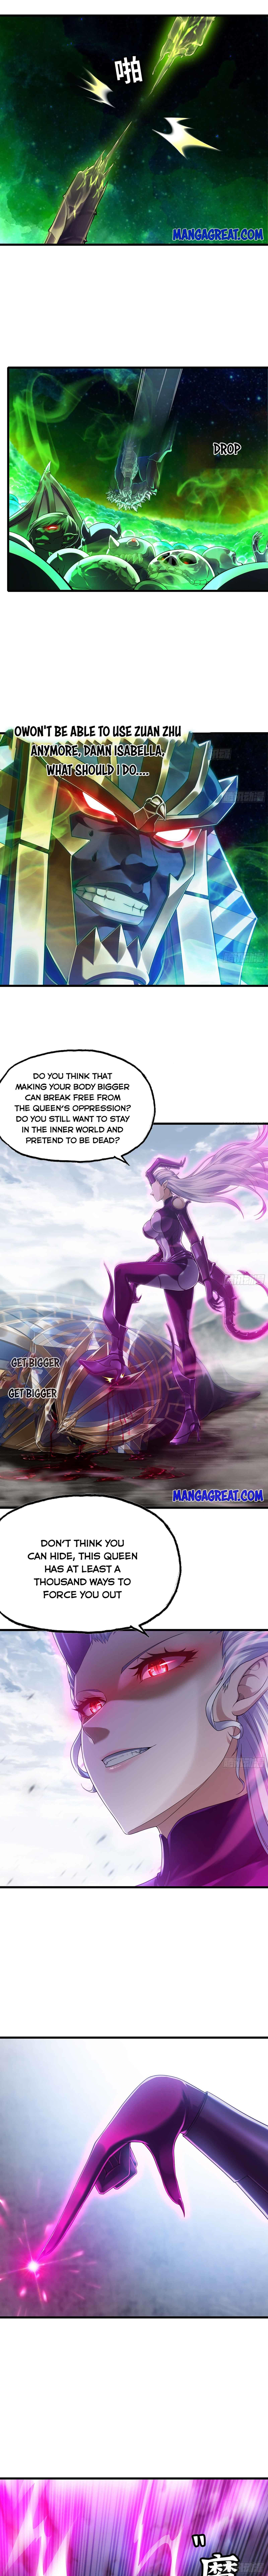 My Wife Is A Demon Queen Chapter 288 page 4 - Mangakakalots.com